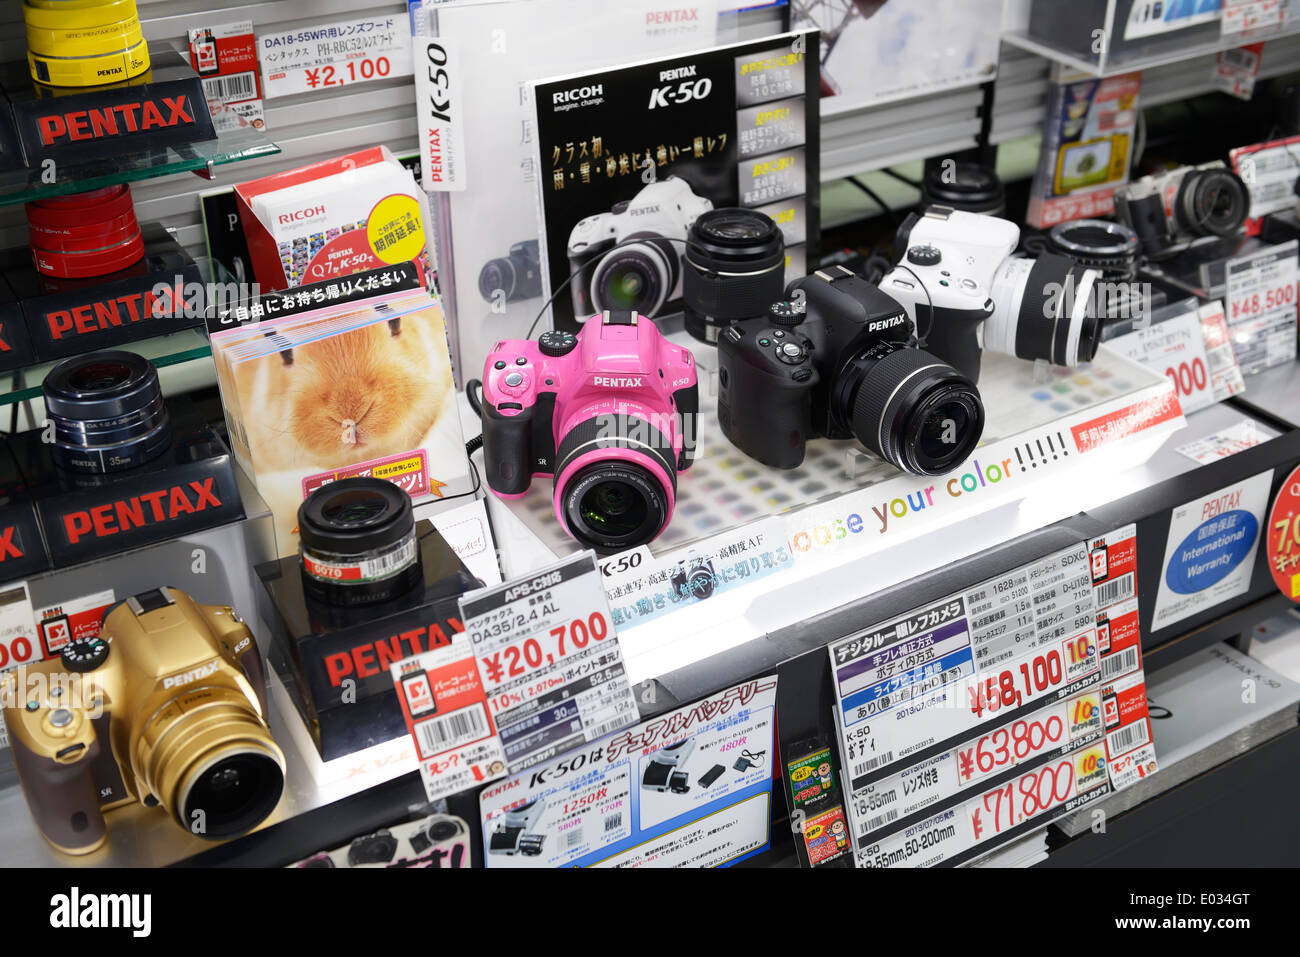 Colorful Pentax cameras on display in electronics store Yodobashi Camera, Yodobashi-Akiba in Akihabara, Tokyo, Japan. - Stock Image